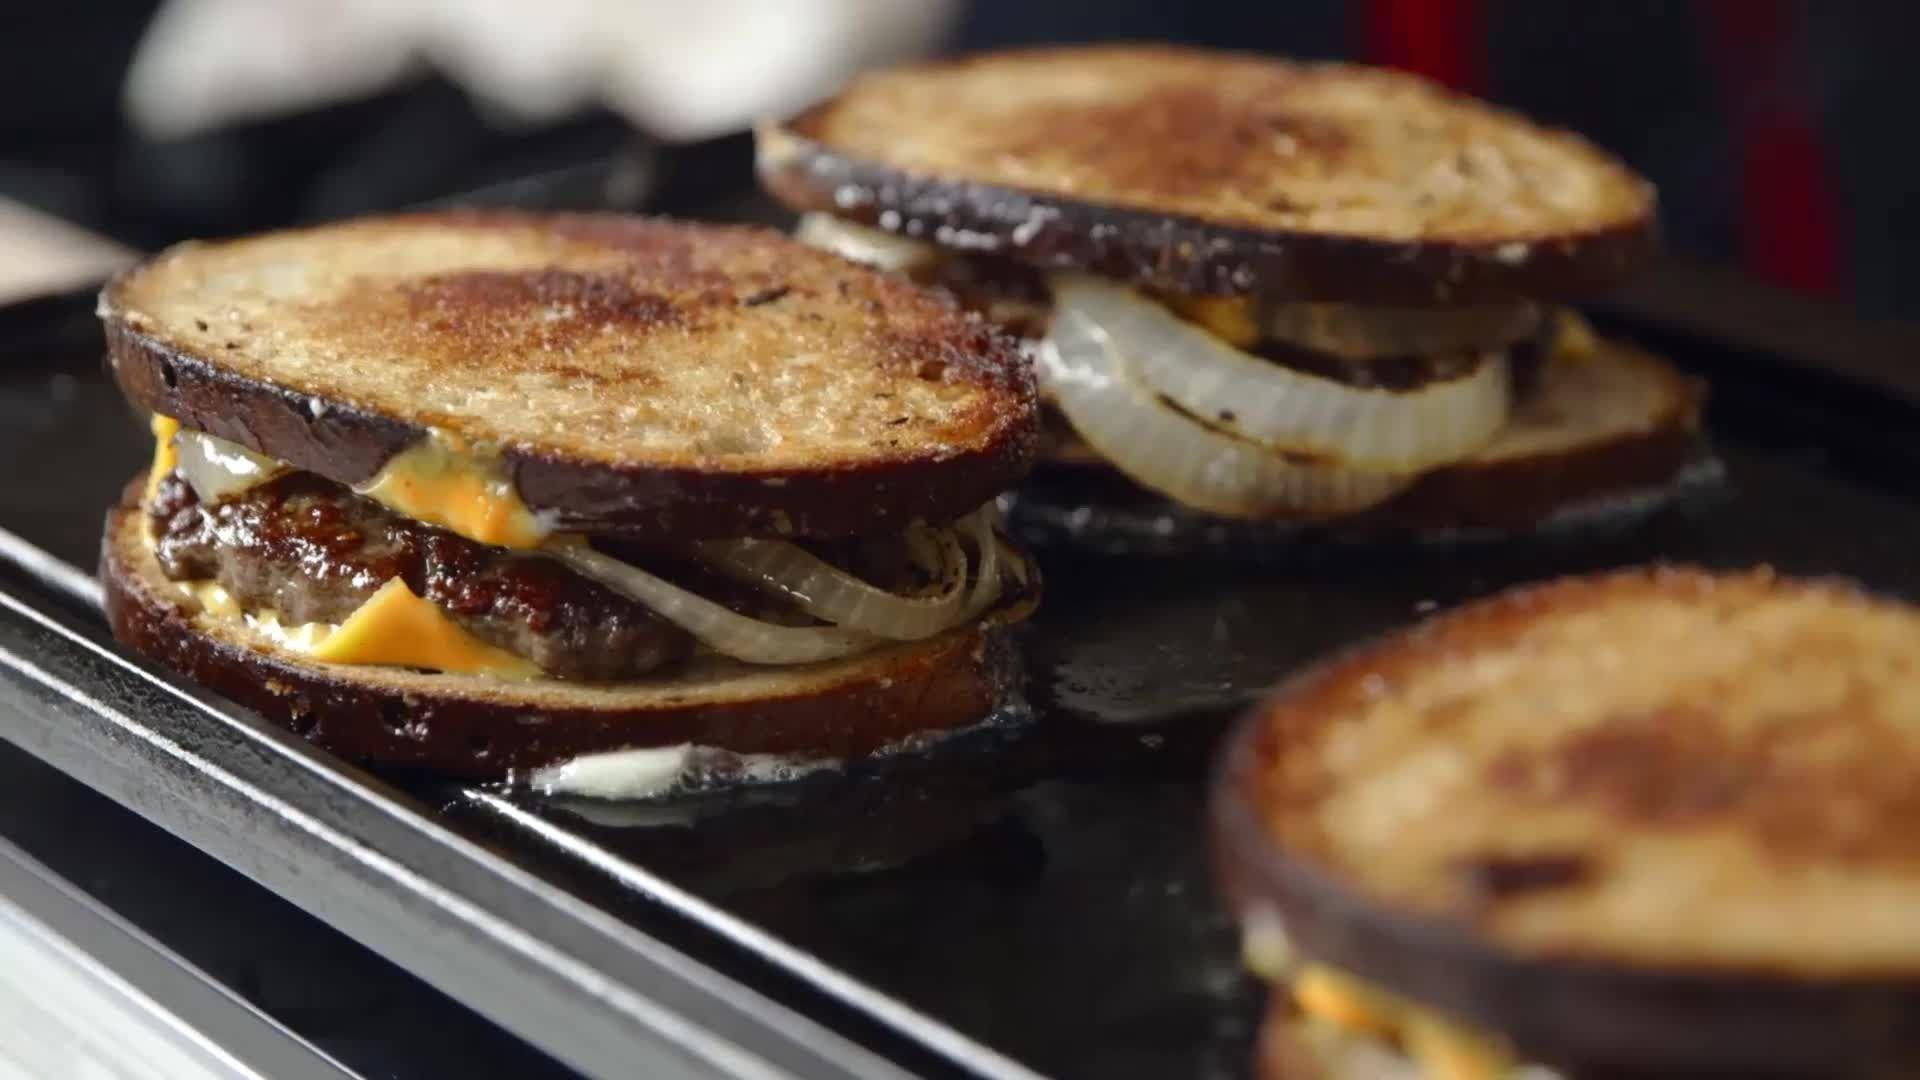 How to Make a Patty Melt